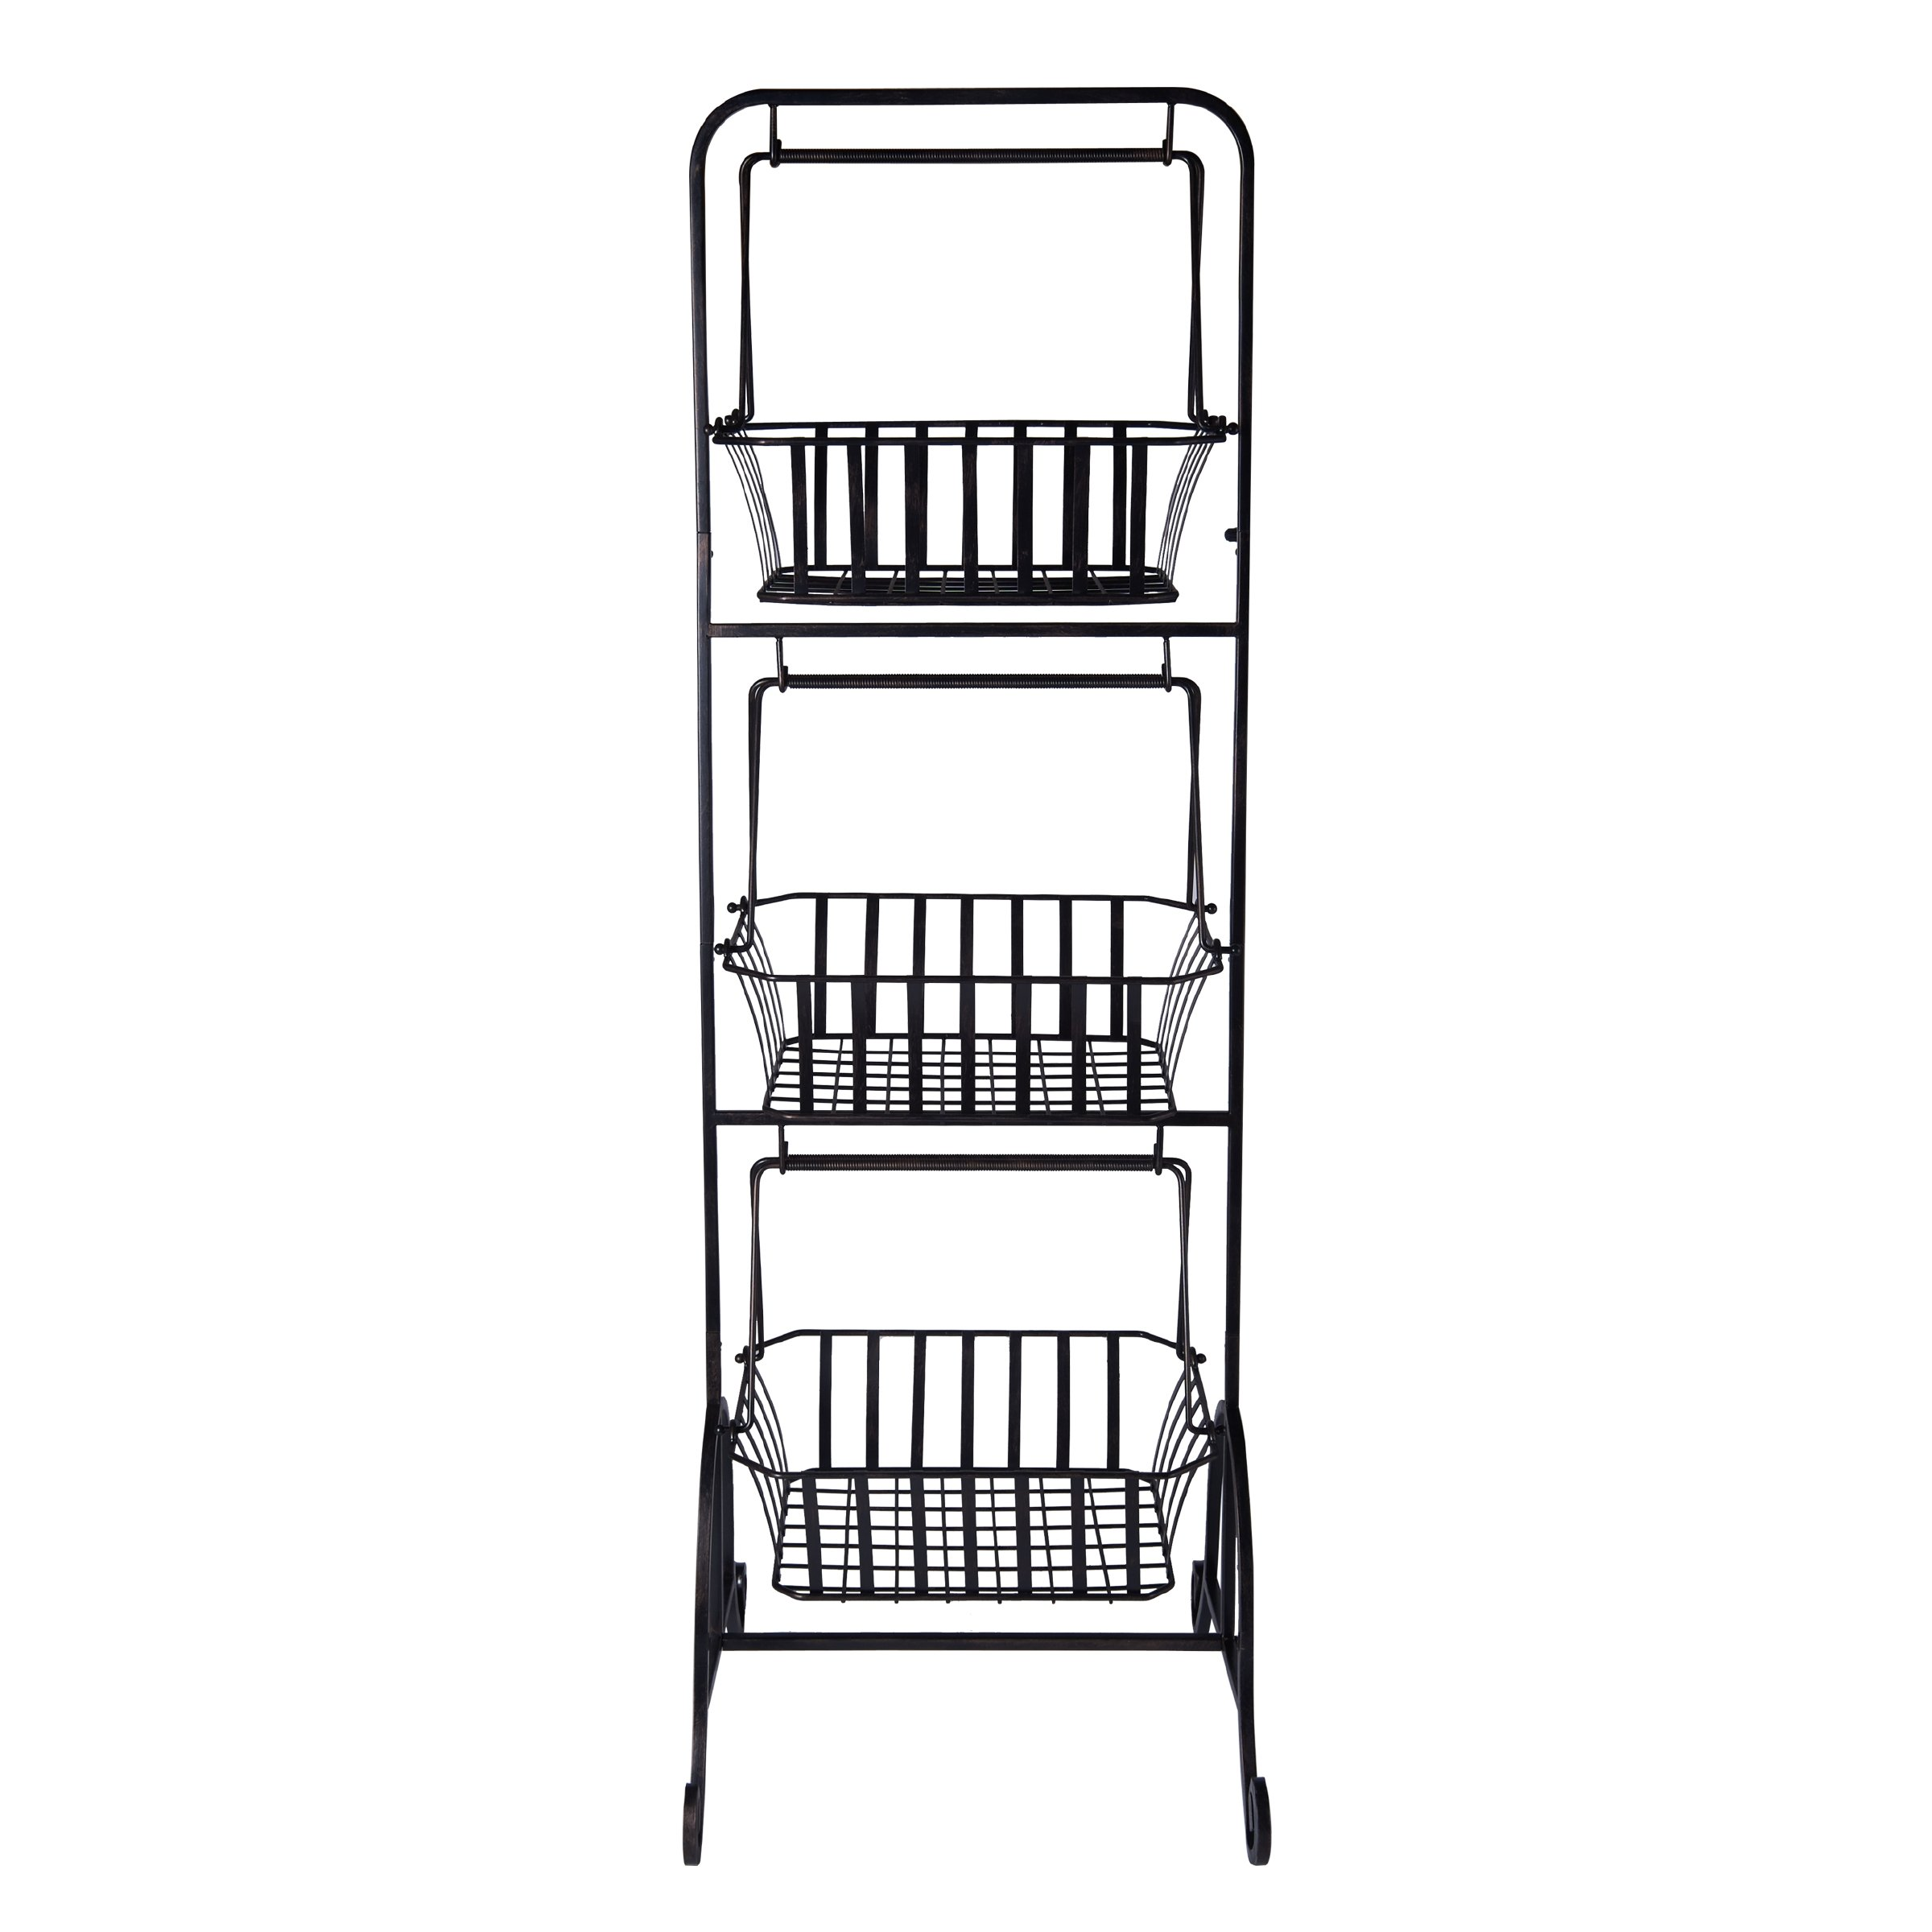 Gourmet Basics by Mikasa 5216453 Bristol 3-Tier Metal Fruit/Home Storage Basket, Floor Standing, Antique Black